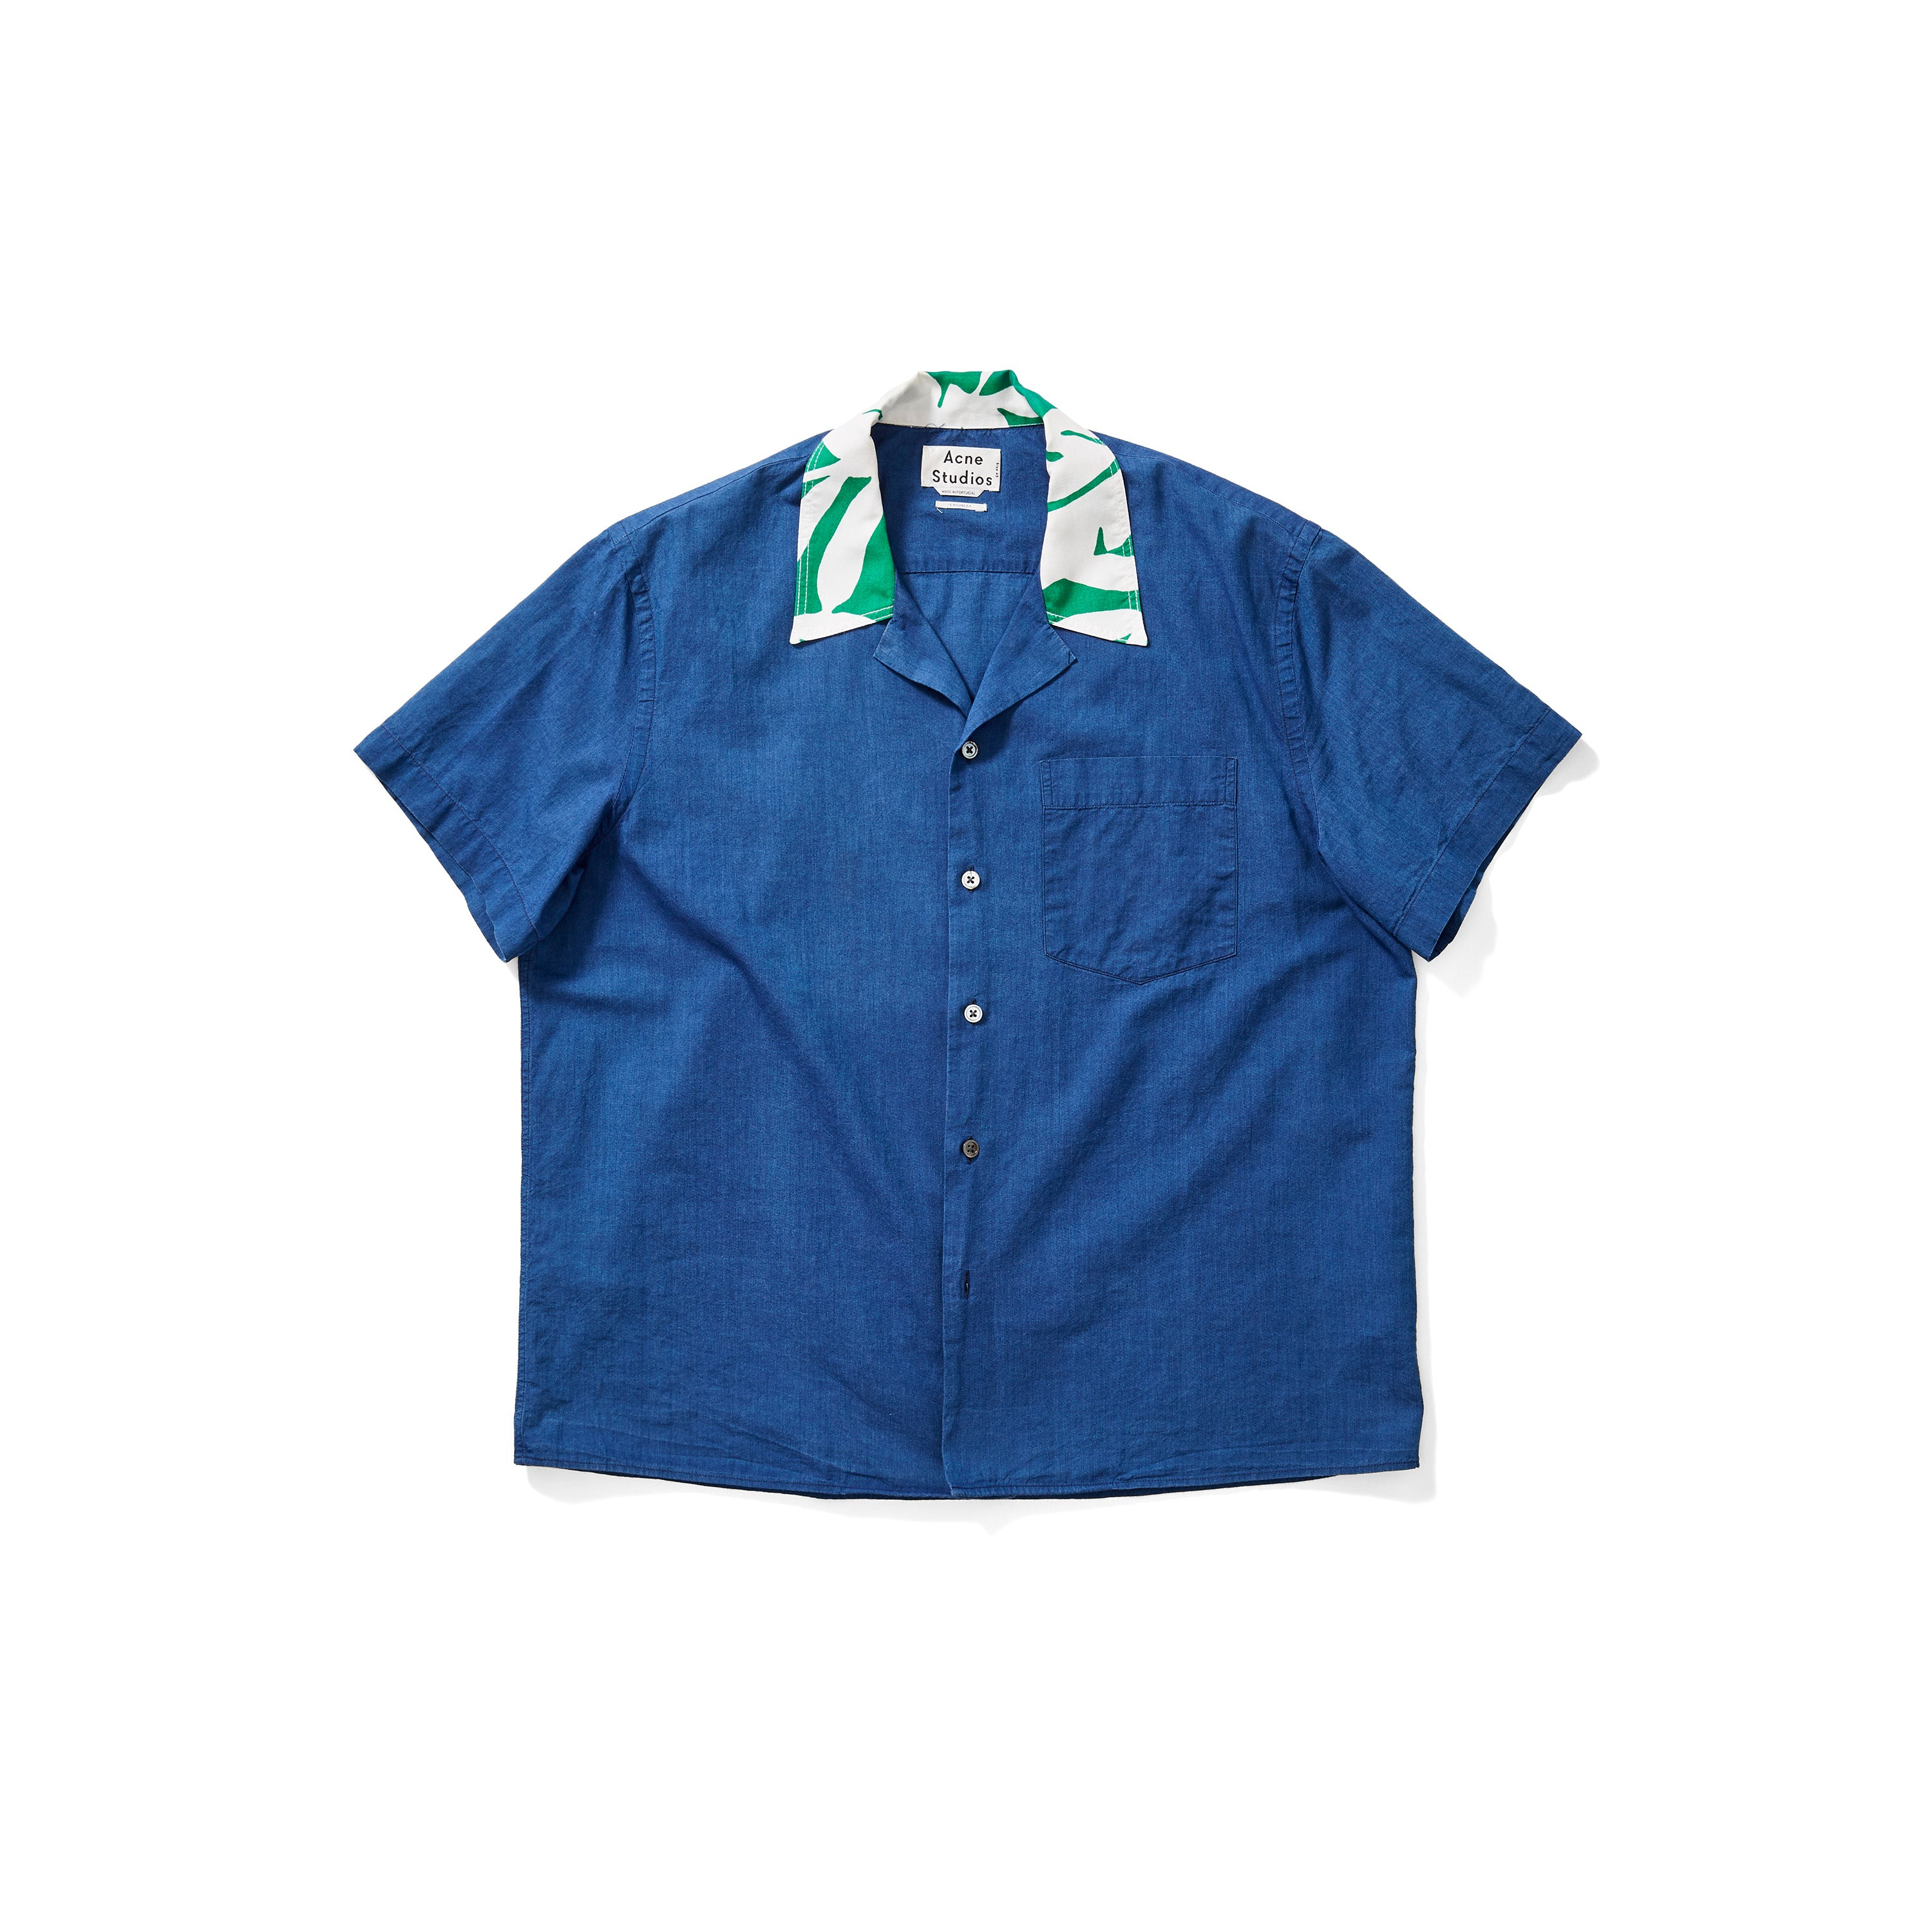 Acne Studios Indigo Shirt with Floral Collar